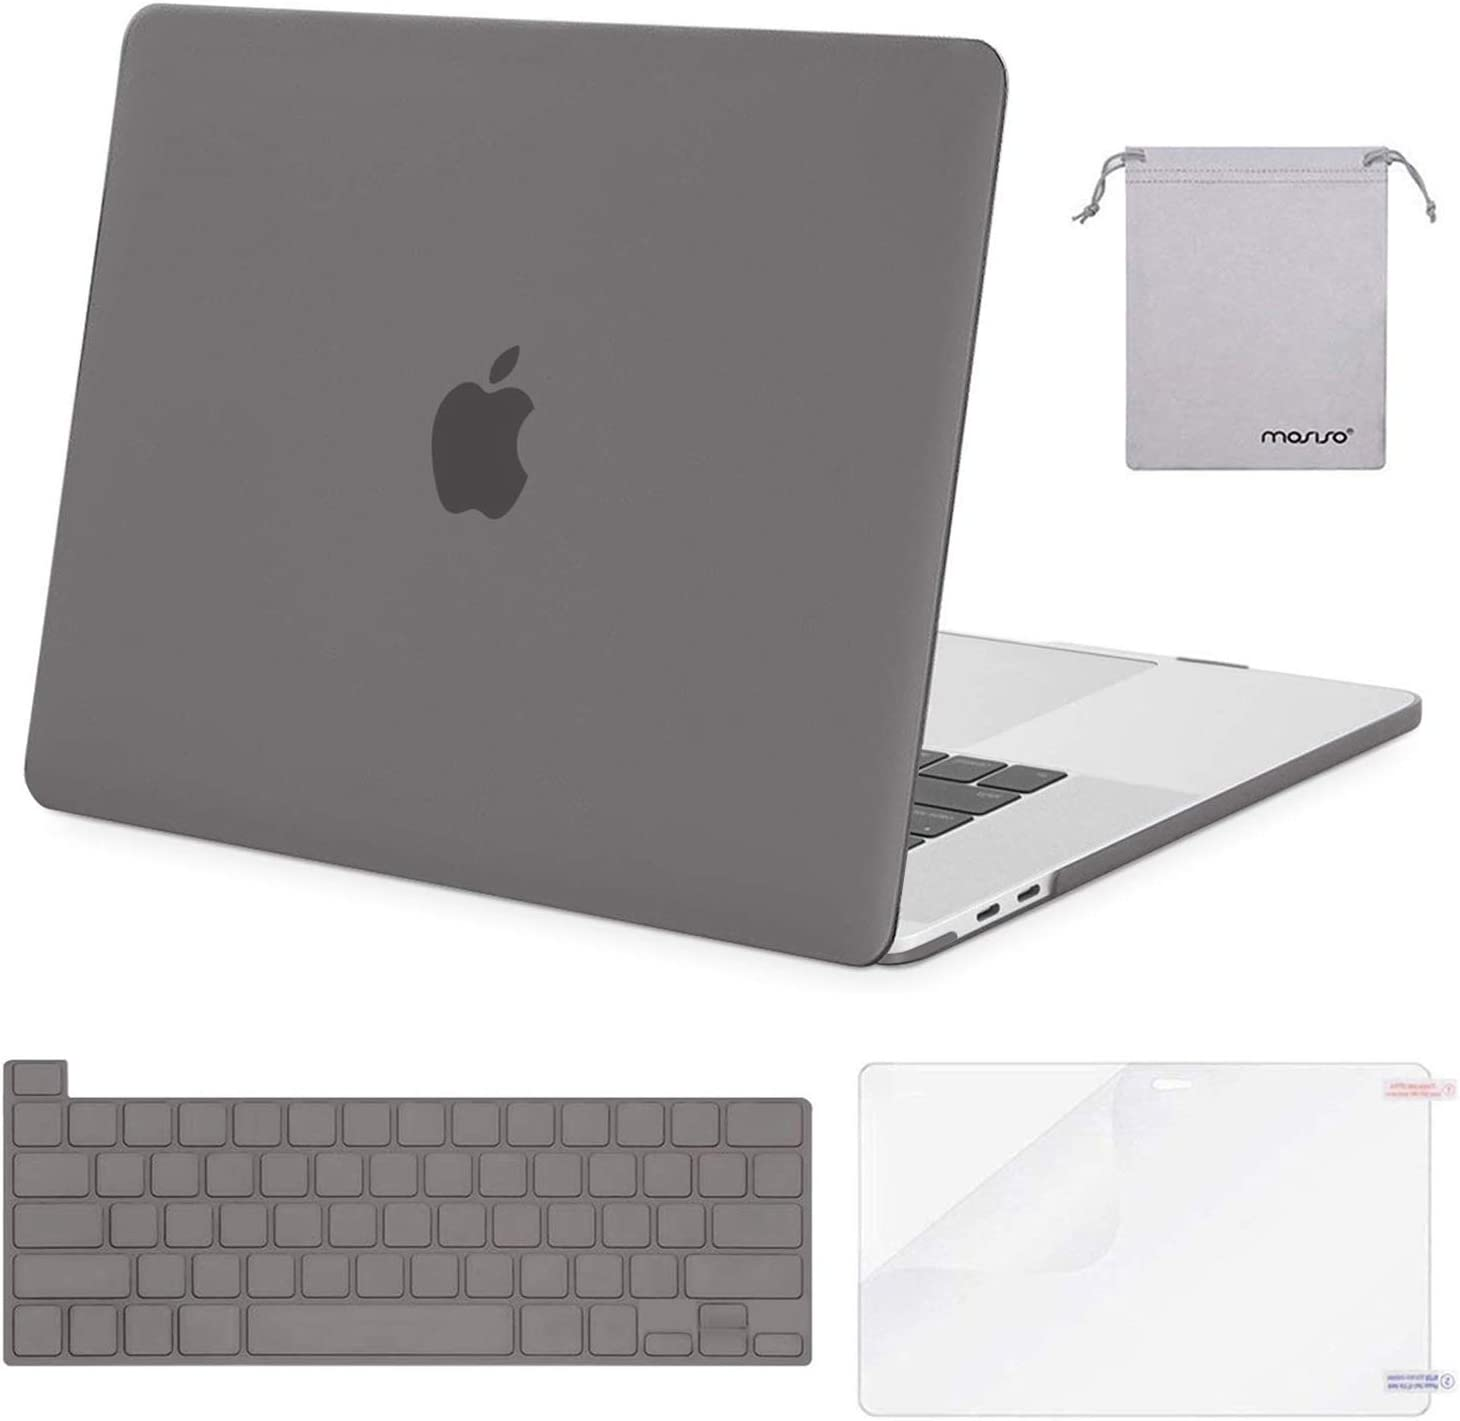 MOSISO MacBook Pro 16 inch Case 2019 Release A2141 with Touch Bar & Touch ID, Plastic Hard Shell Case & Keyboard Cover & Screen Protector & Storage Bag Compatible with MacBook Pro 16, Gray